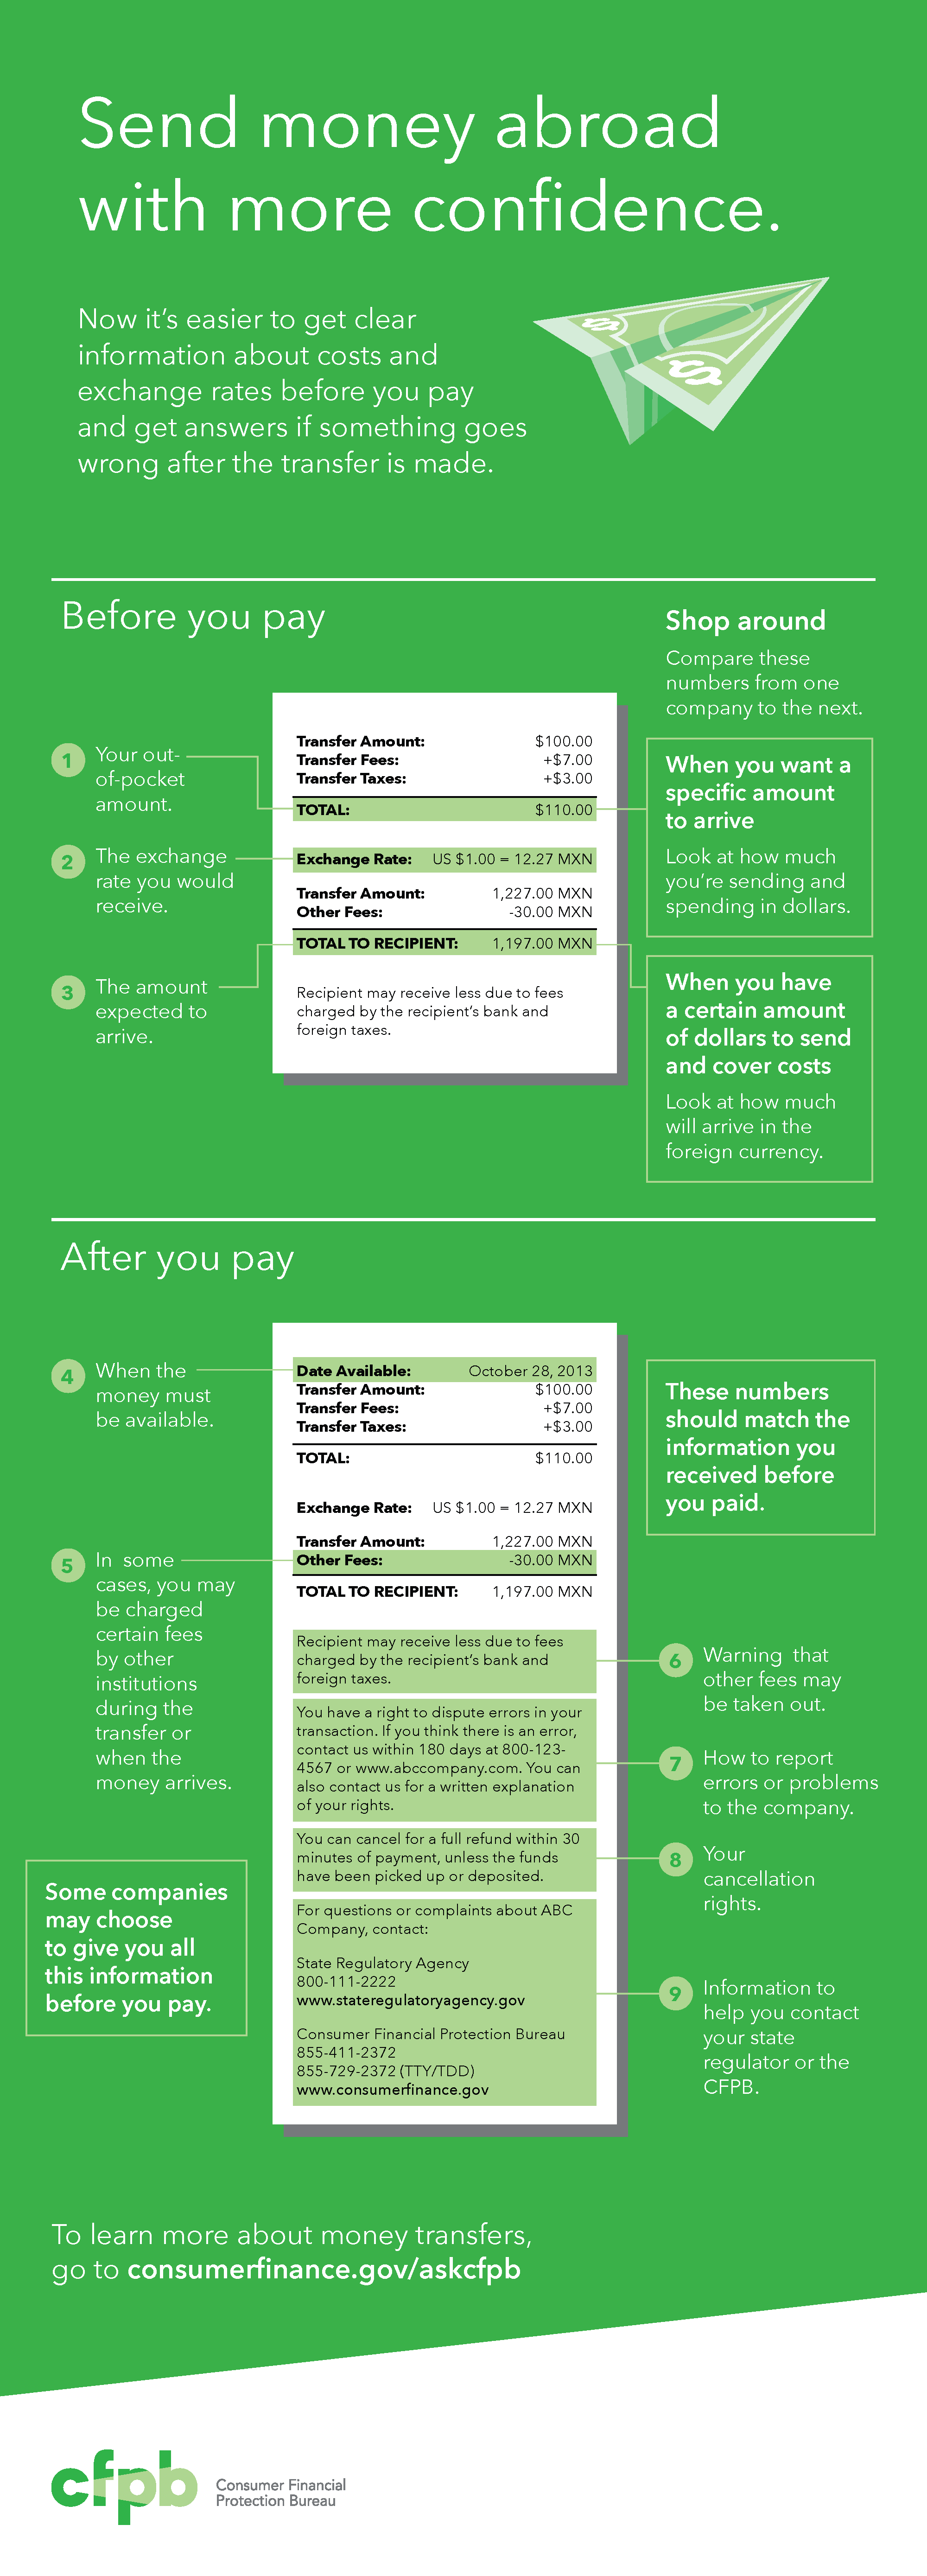 201312_cfpb_remittance_infographic